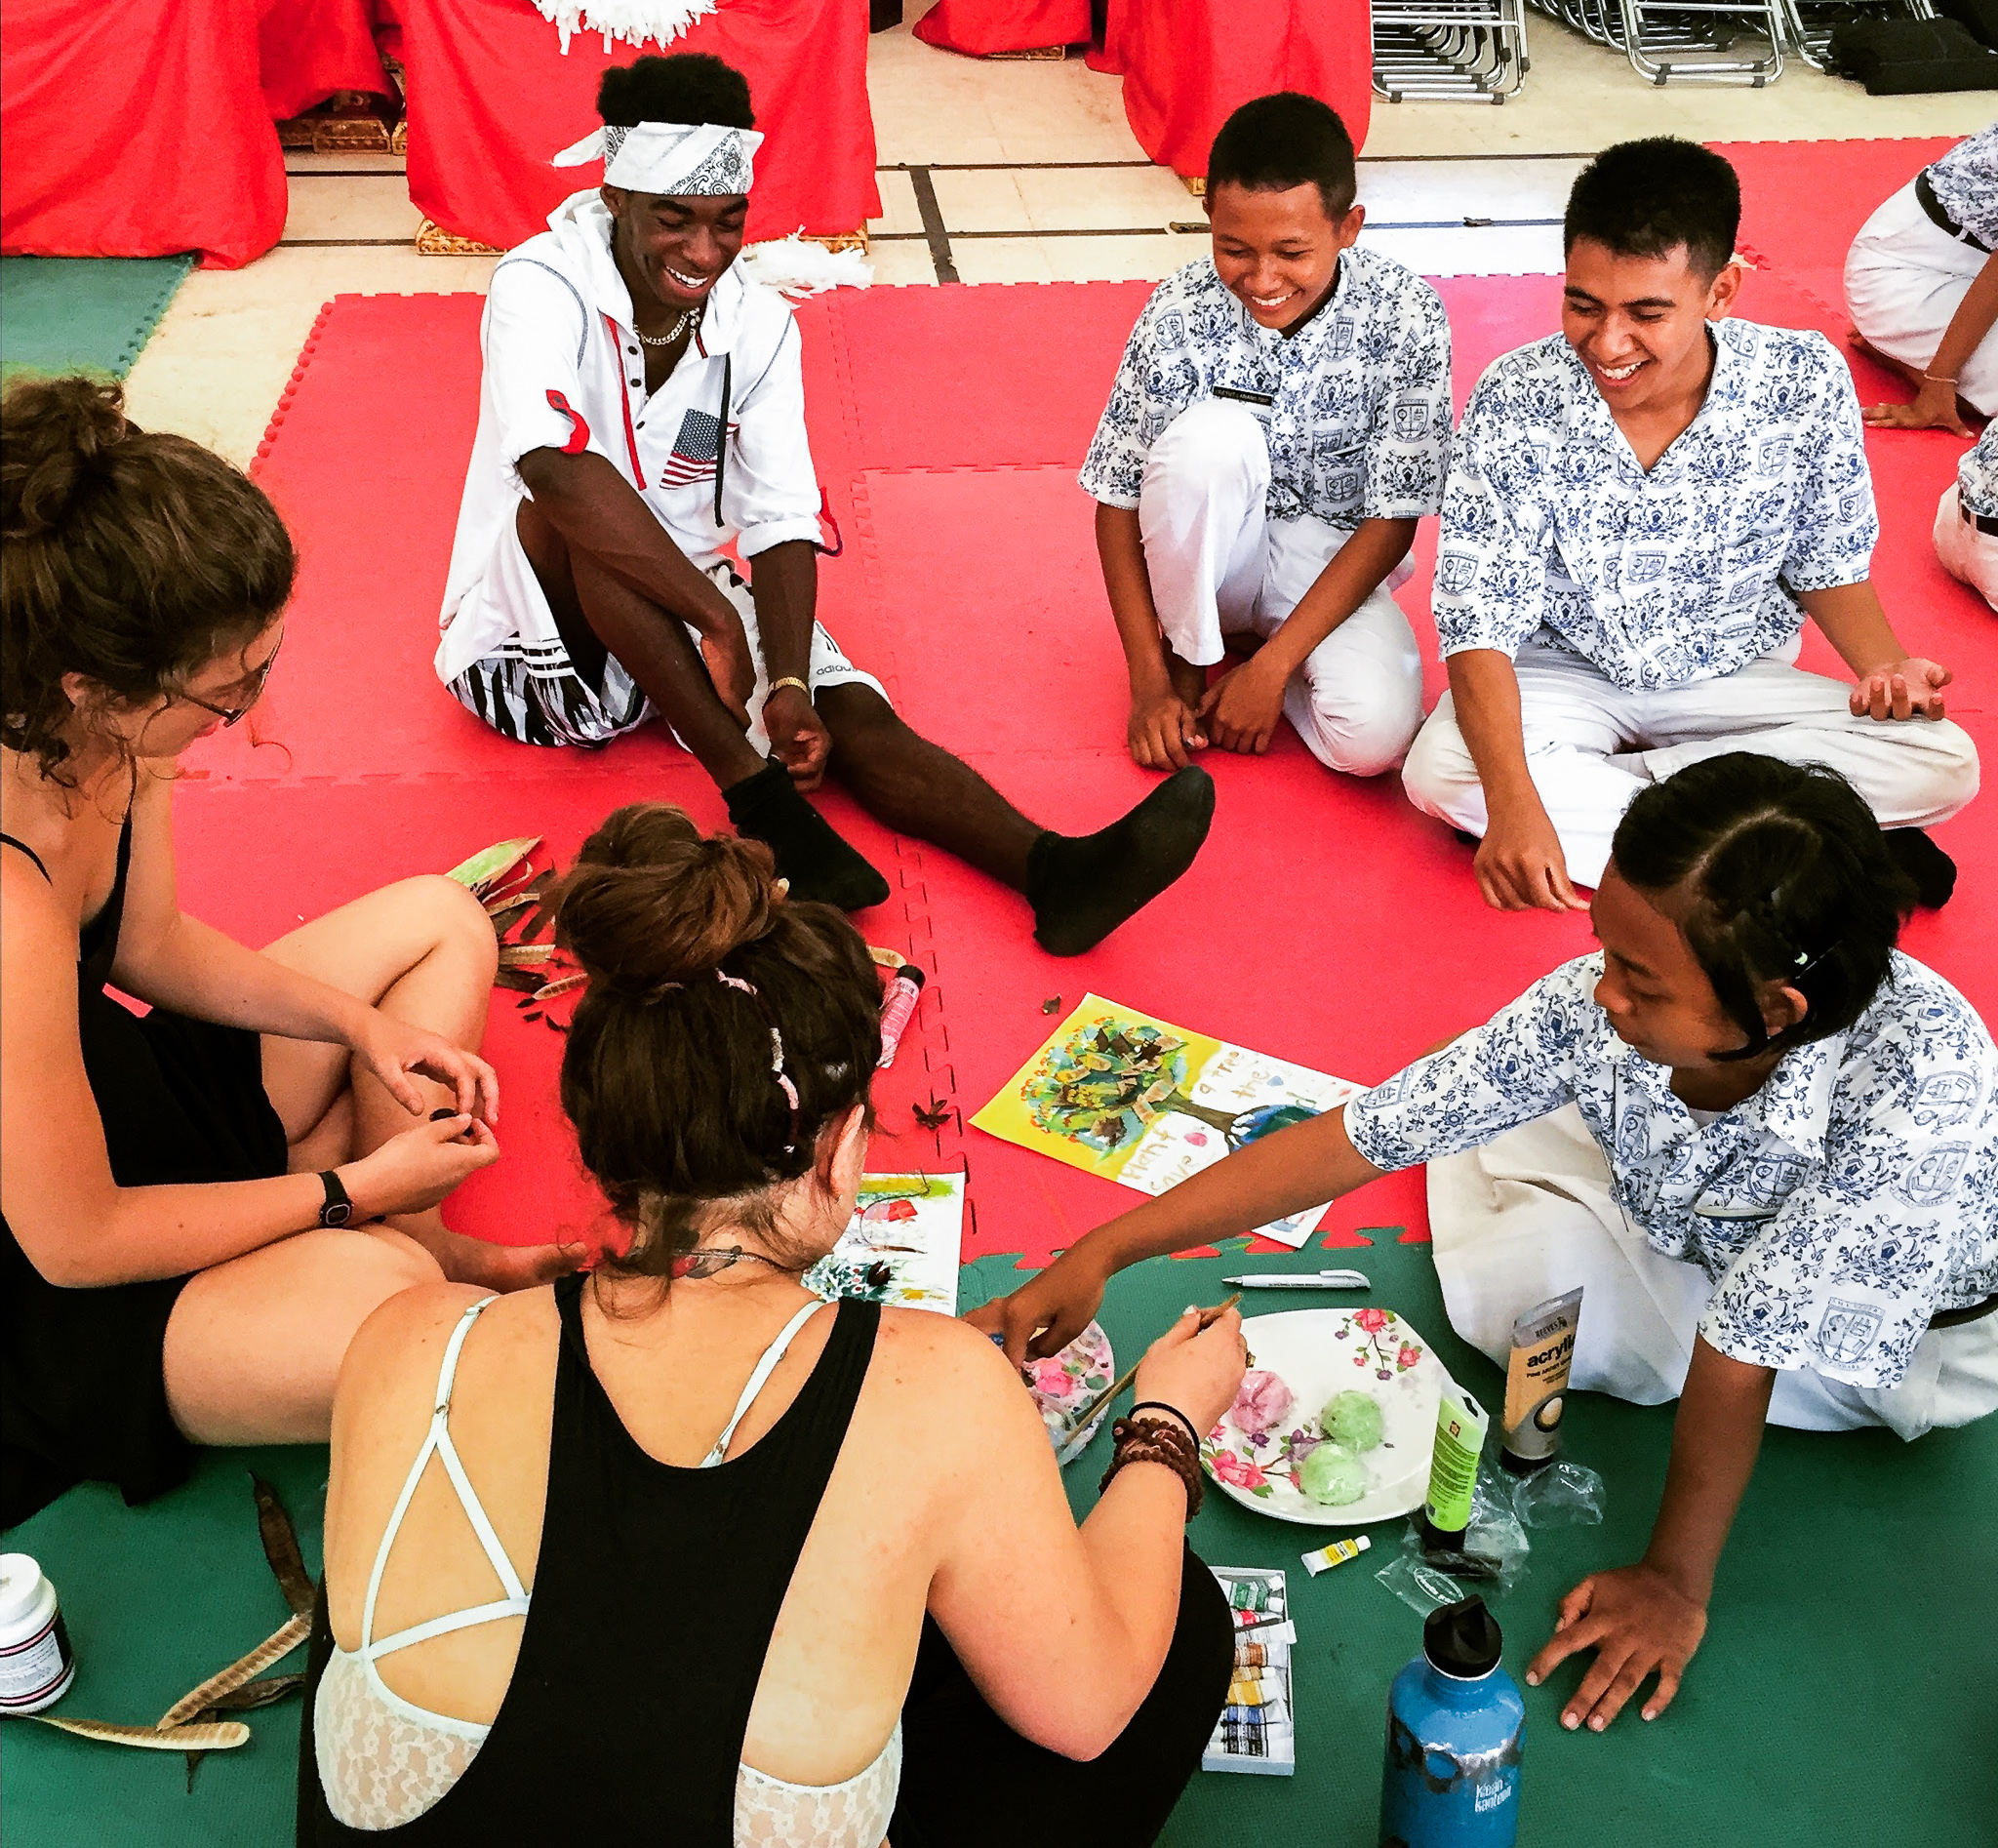 Summer Program - Health and Well Being | Travel For Teens: Bali Healthcare Education and Medical Outreach